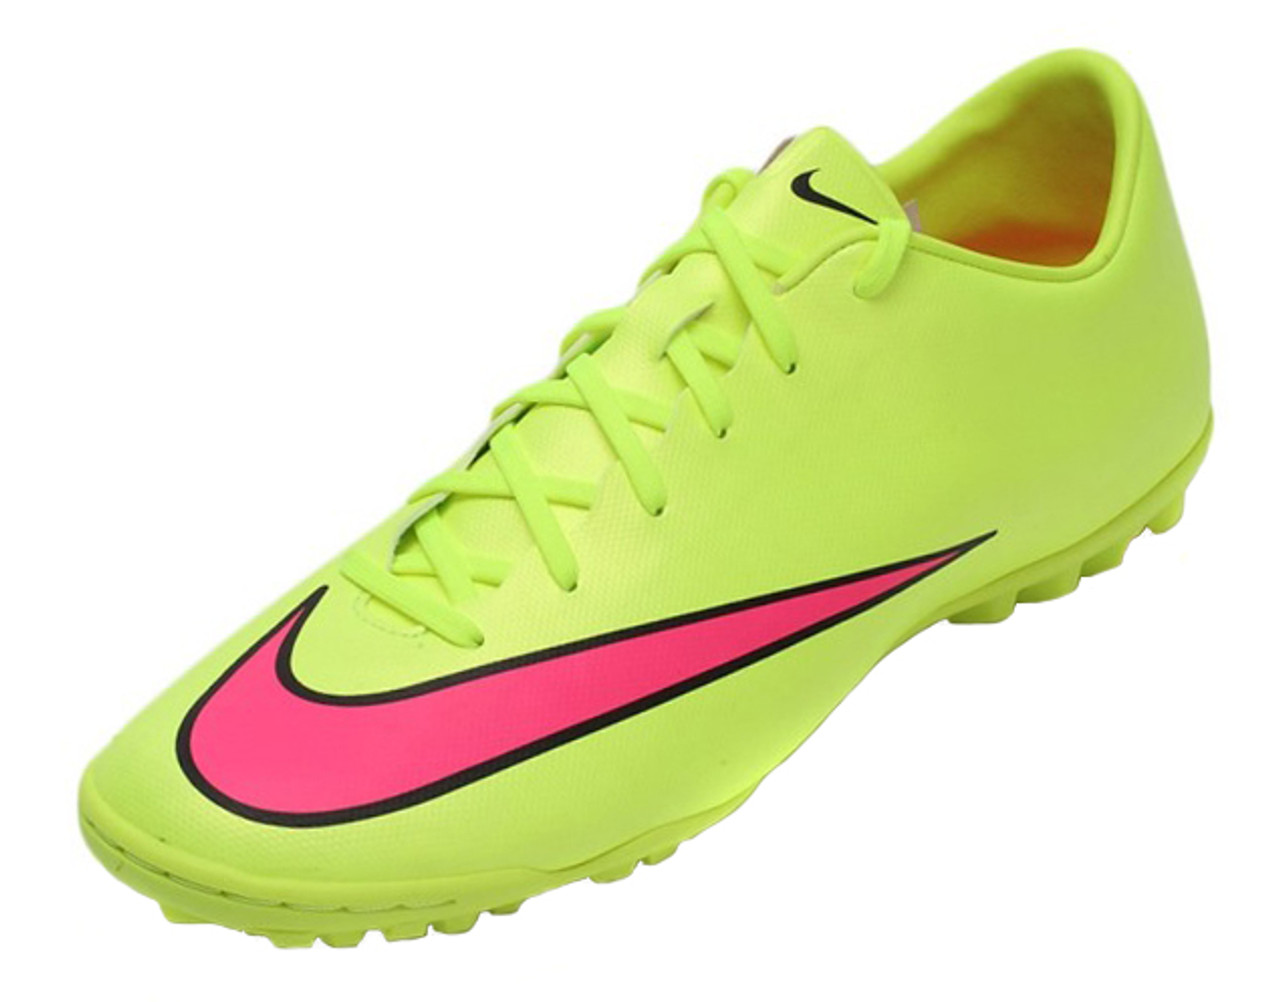 6dc1adbbe8ac Nike Mercurial Victory V TF - Volt Hyper Pink - ohp soccer